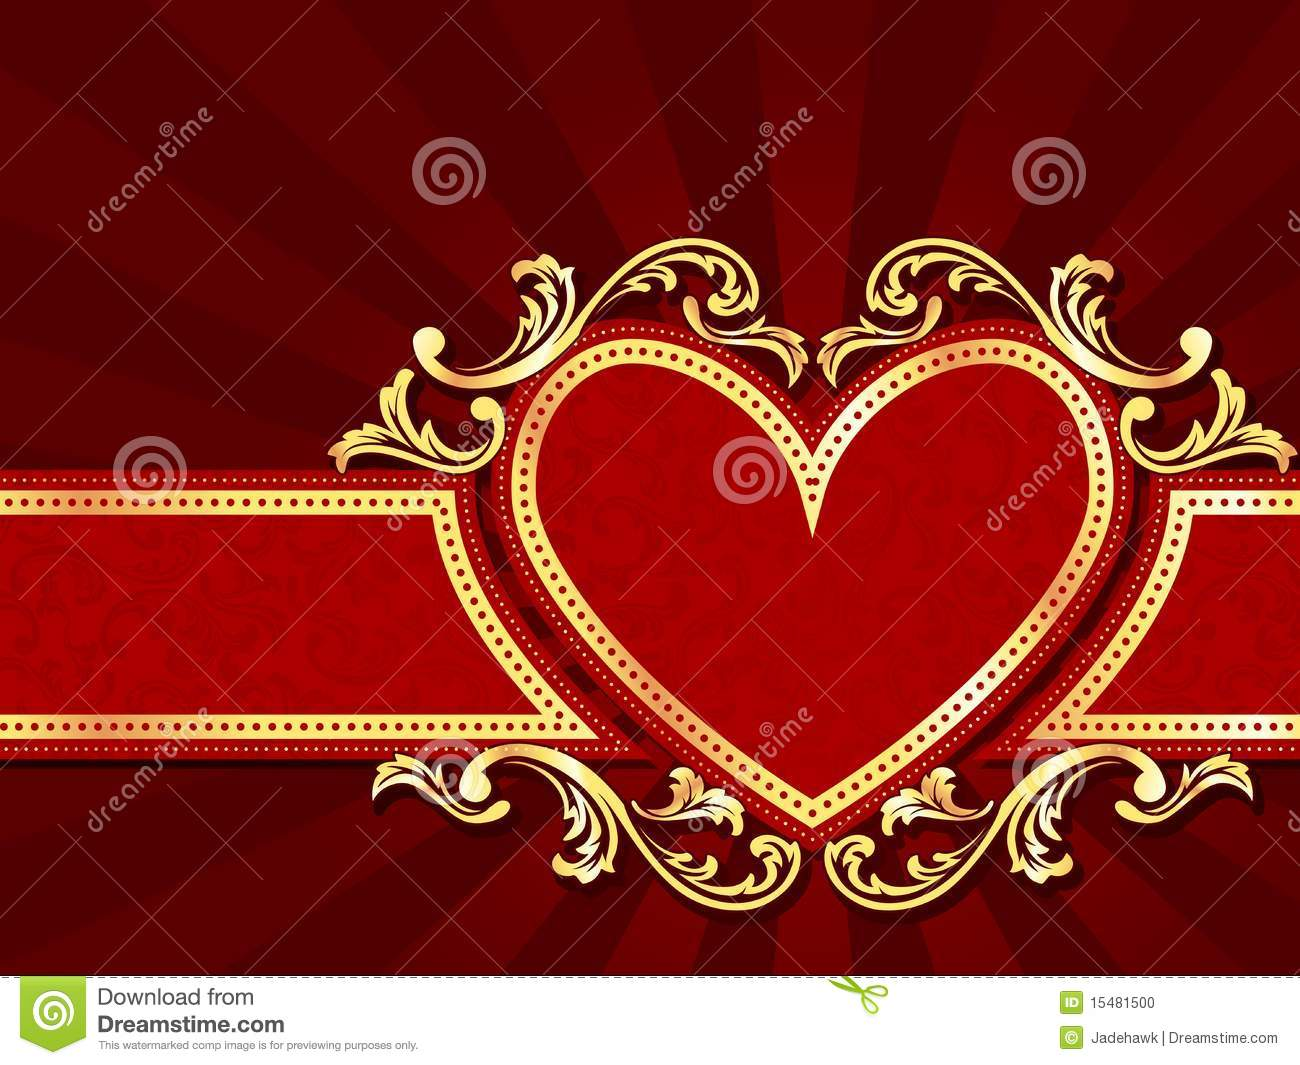 Horizontal Heart-shaped Red Banner With Gold Filig Stock Photo - Image: 15481500